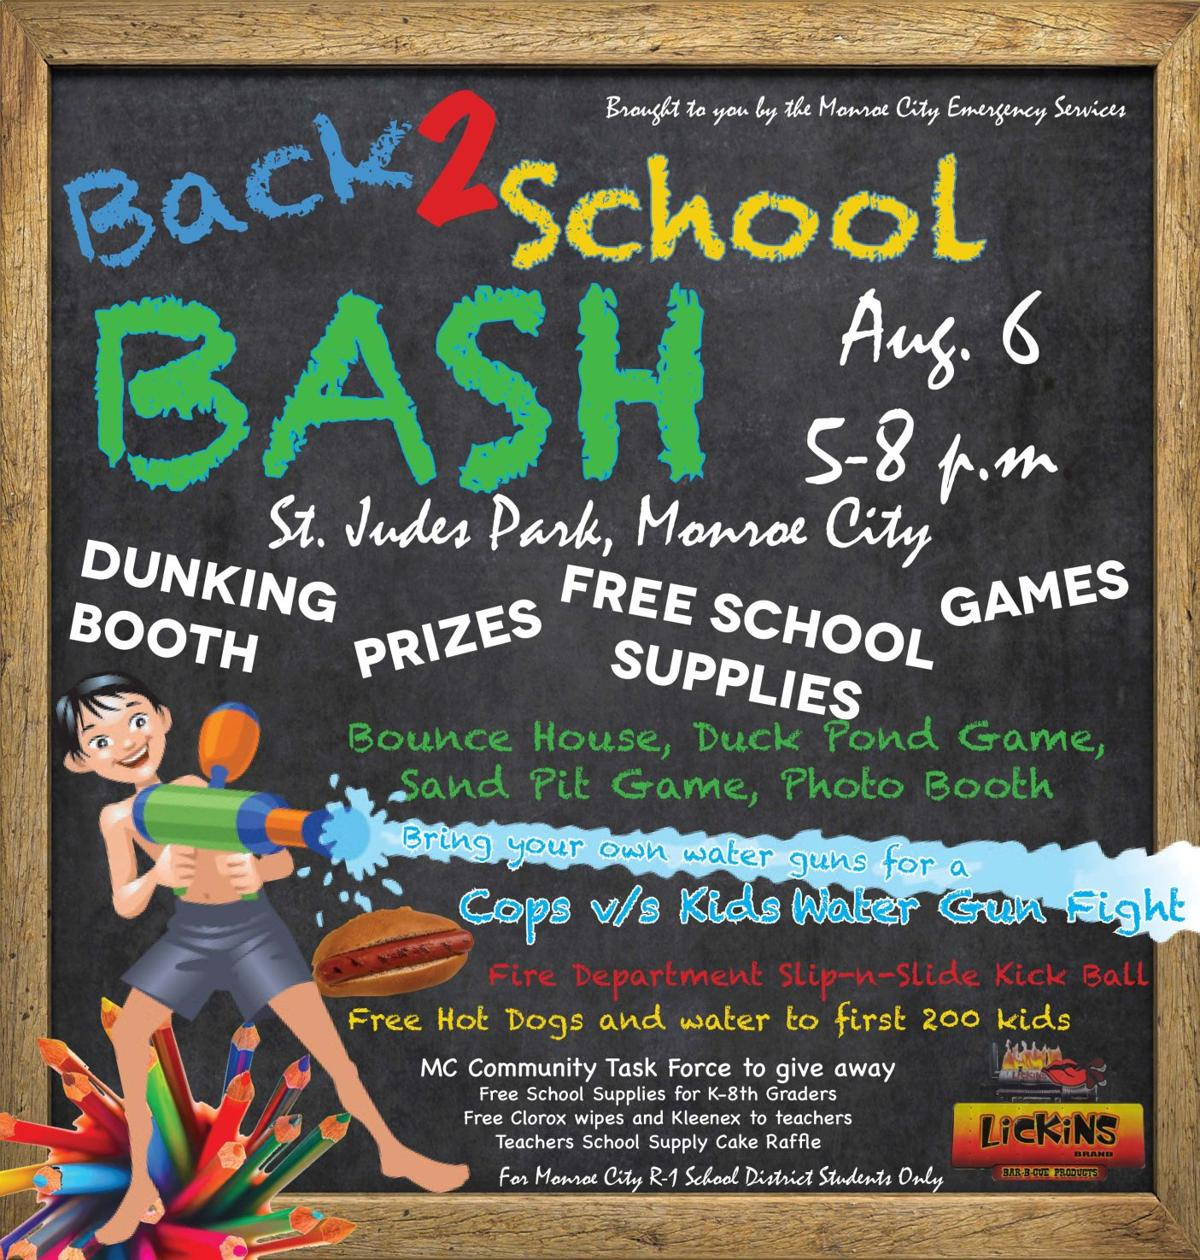 Back to School Bash to provide a fun evening for district